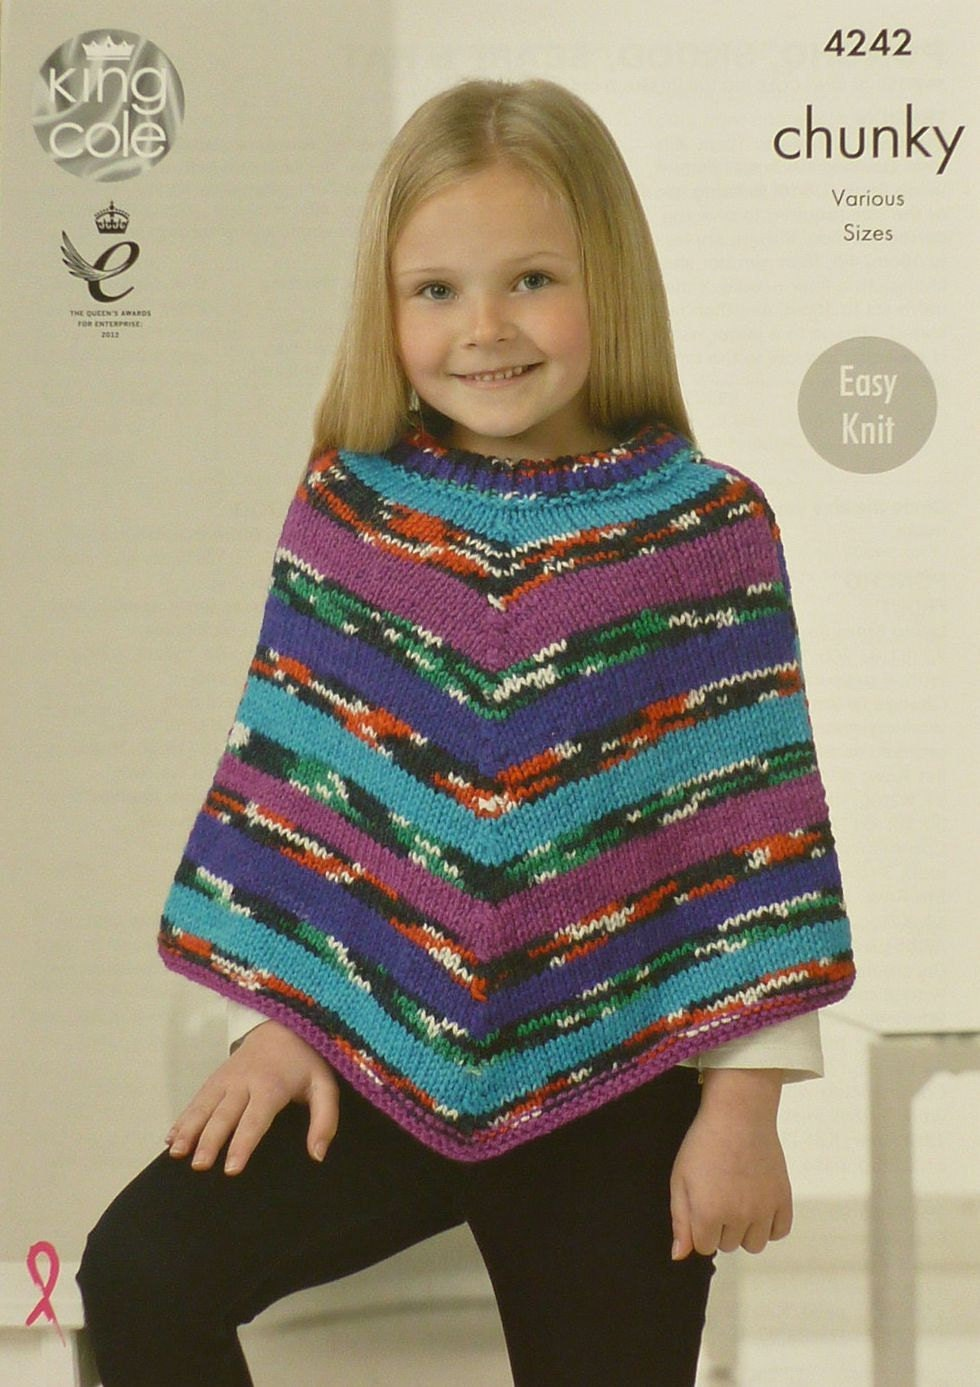 Childrens Knitting Pattern K4242 Childrens Easy Knit Scarf, Cowl and ...